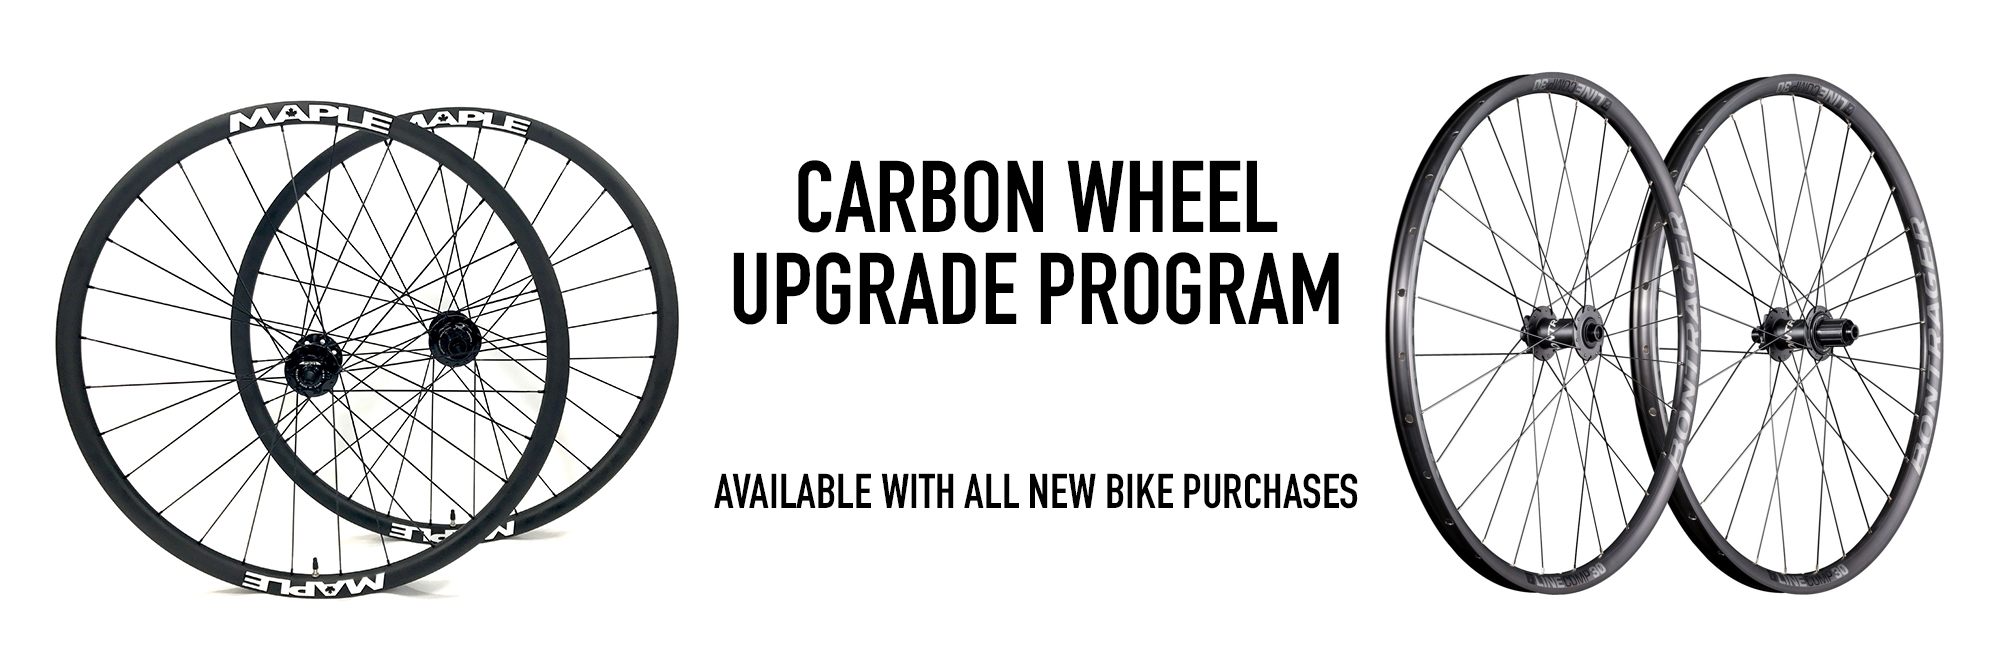 Carbon Wheel Upgrade Program